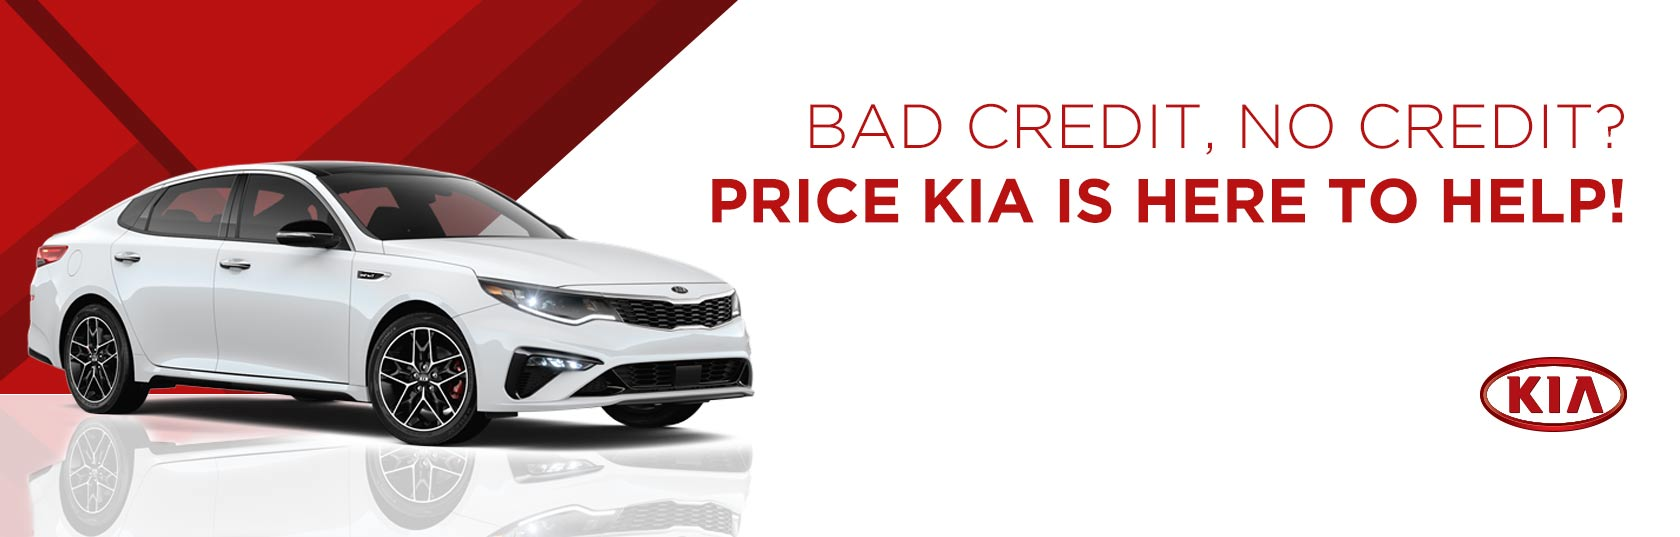 Kia Finance Bad Credit >> Bad Credit